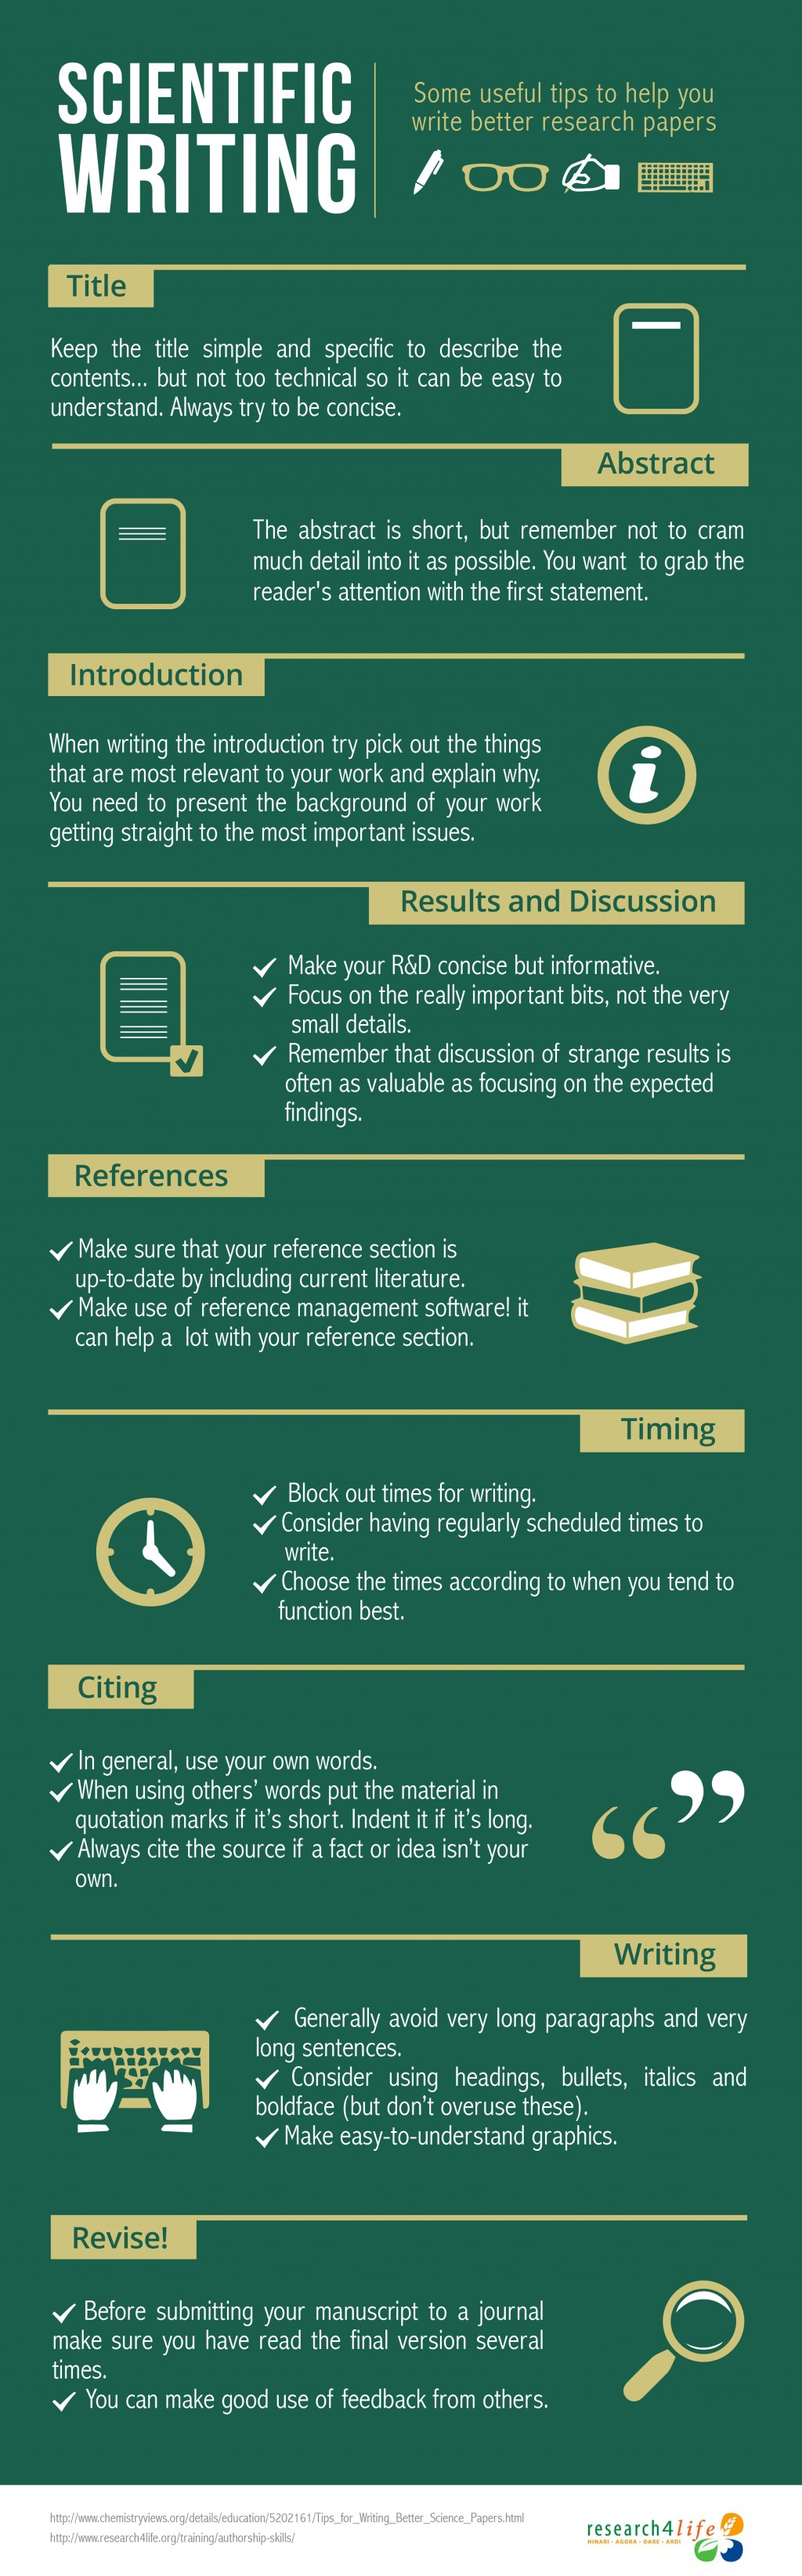 001 Research Paper Tips For Papers Scientific Writing Wondrous Good Effective Large